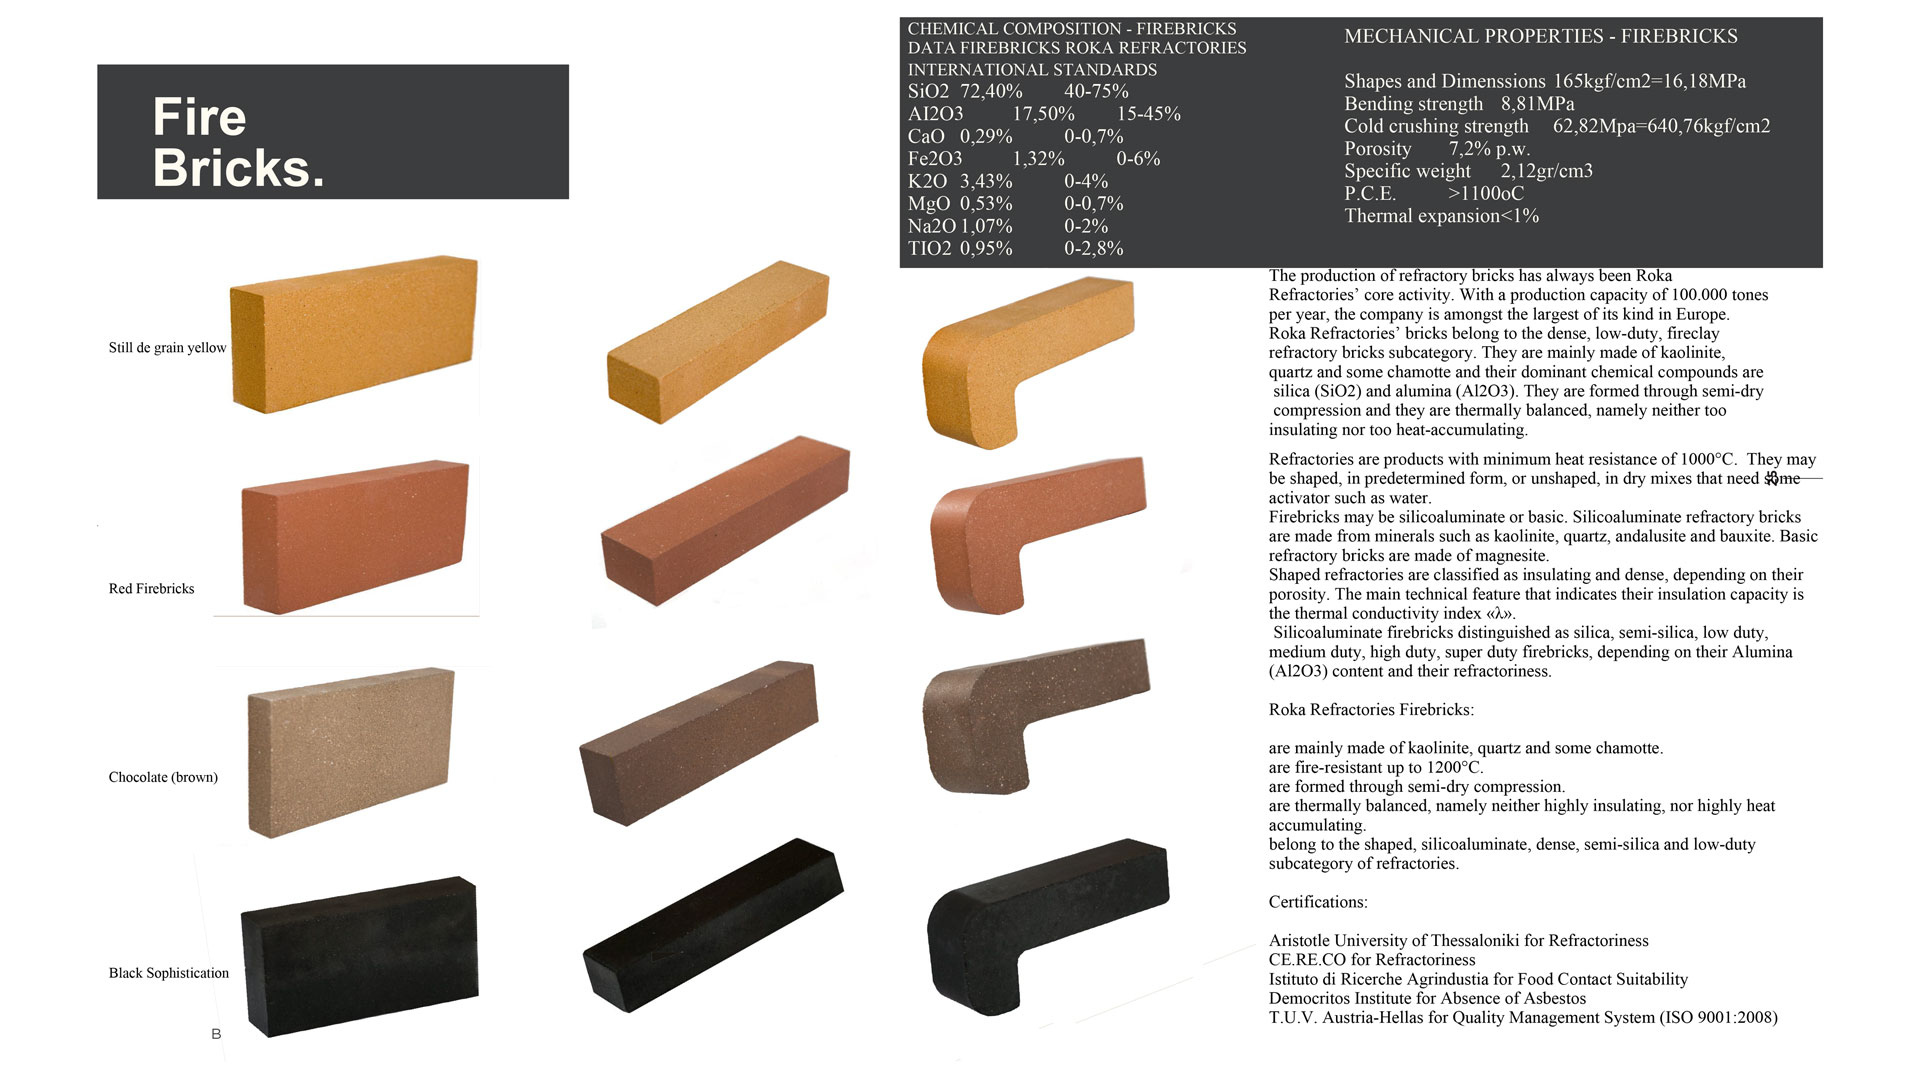 Roka-Refractories-Slider-Firebricks